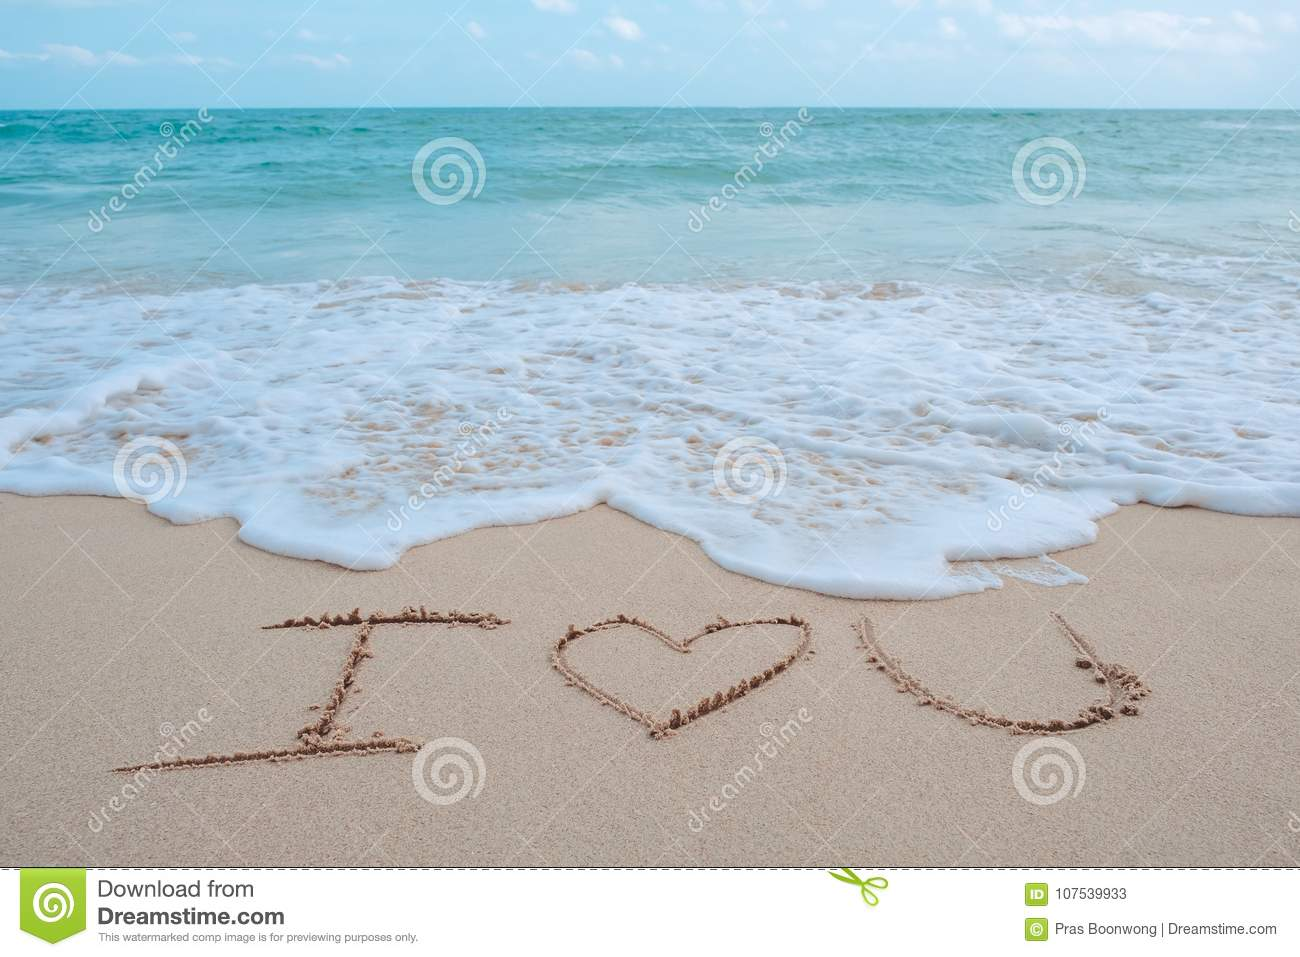 The hand writing word I love you on the beach by the sea with white waves and blue sky